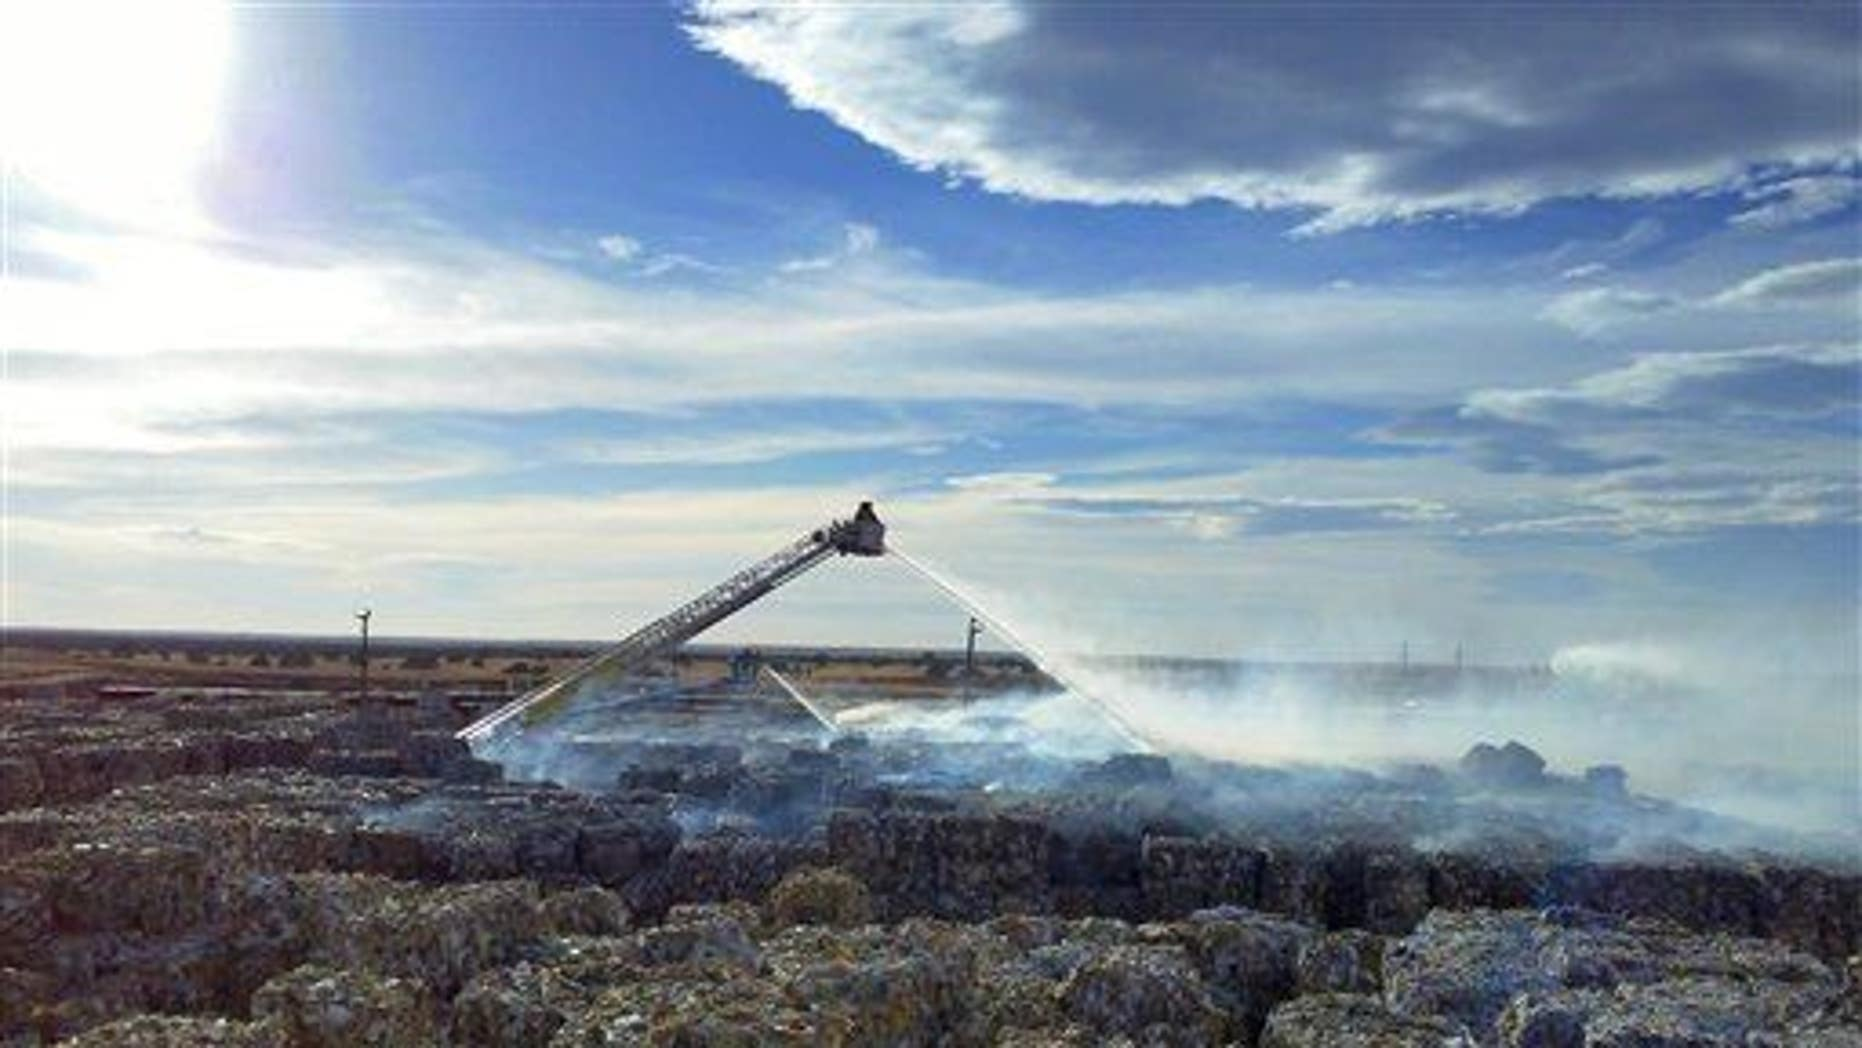 Firefighters in Snowflake, Arizona, douse a recycling fire in this file photo.